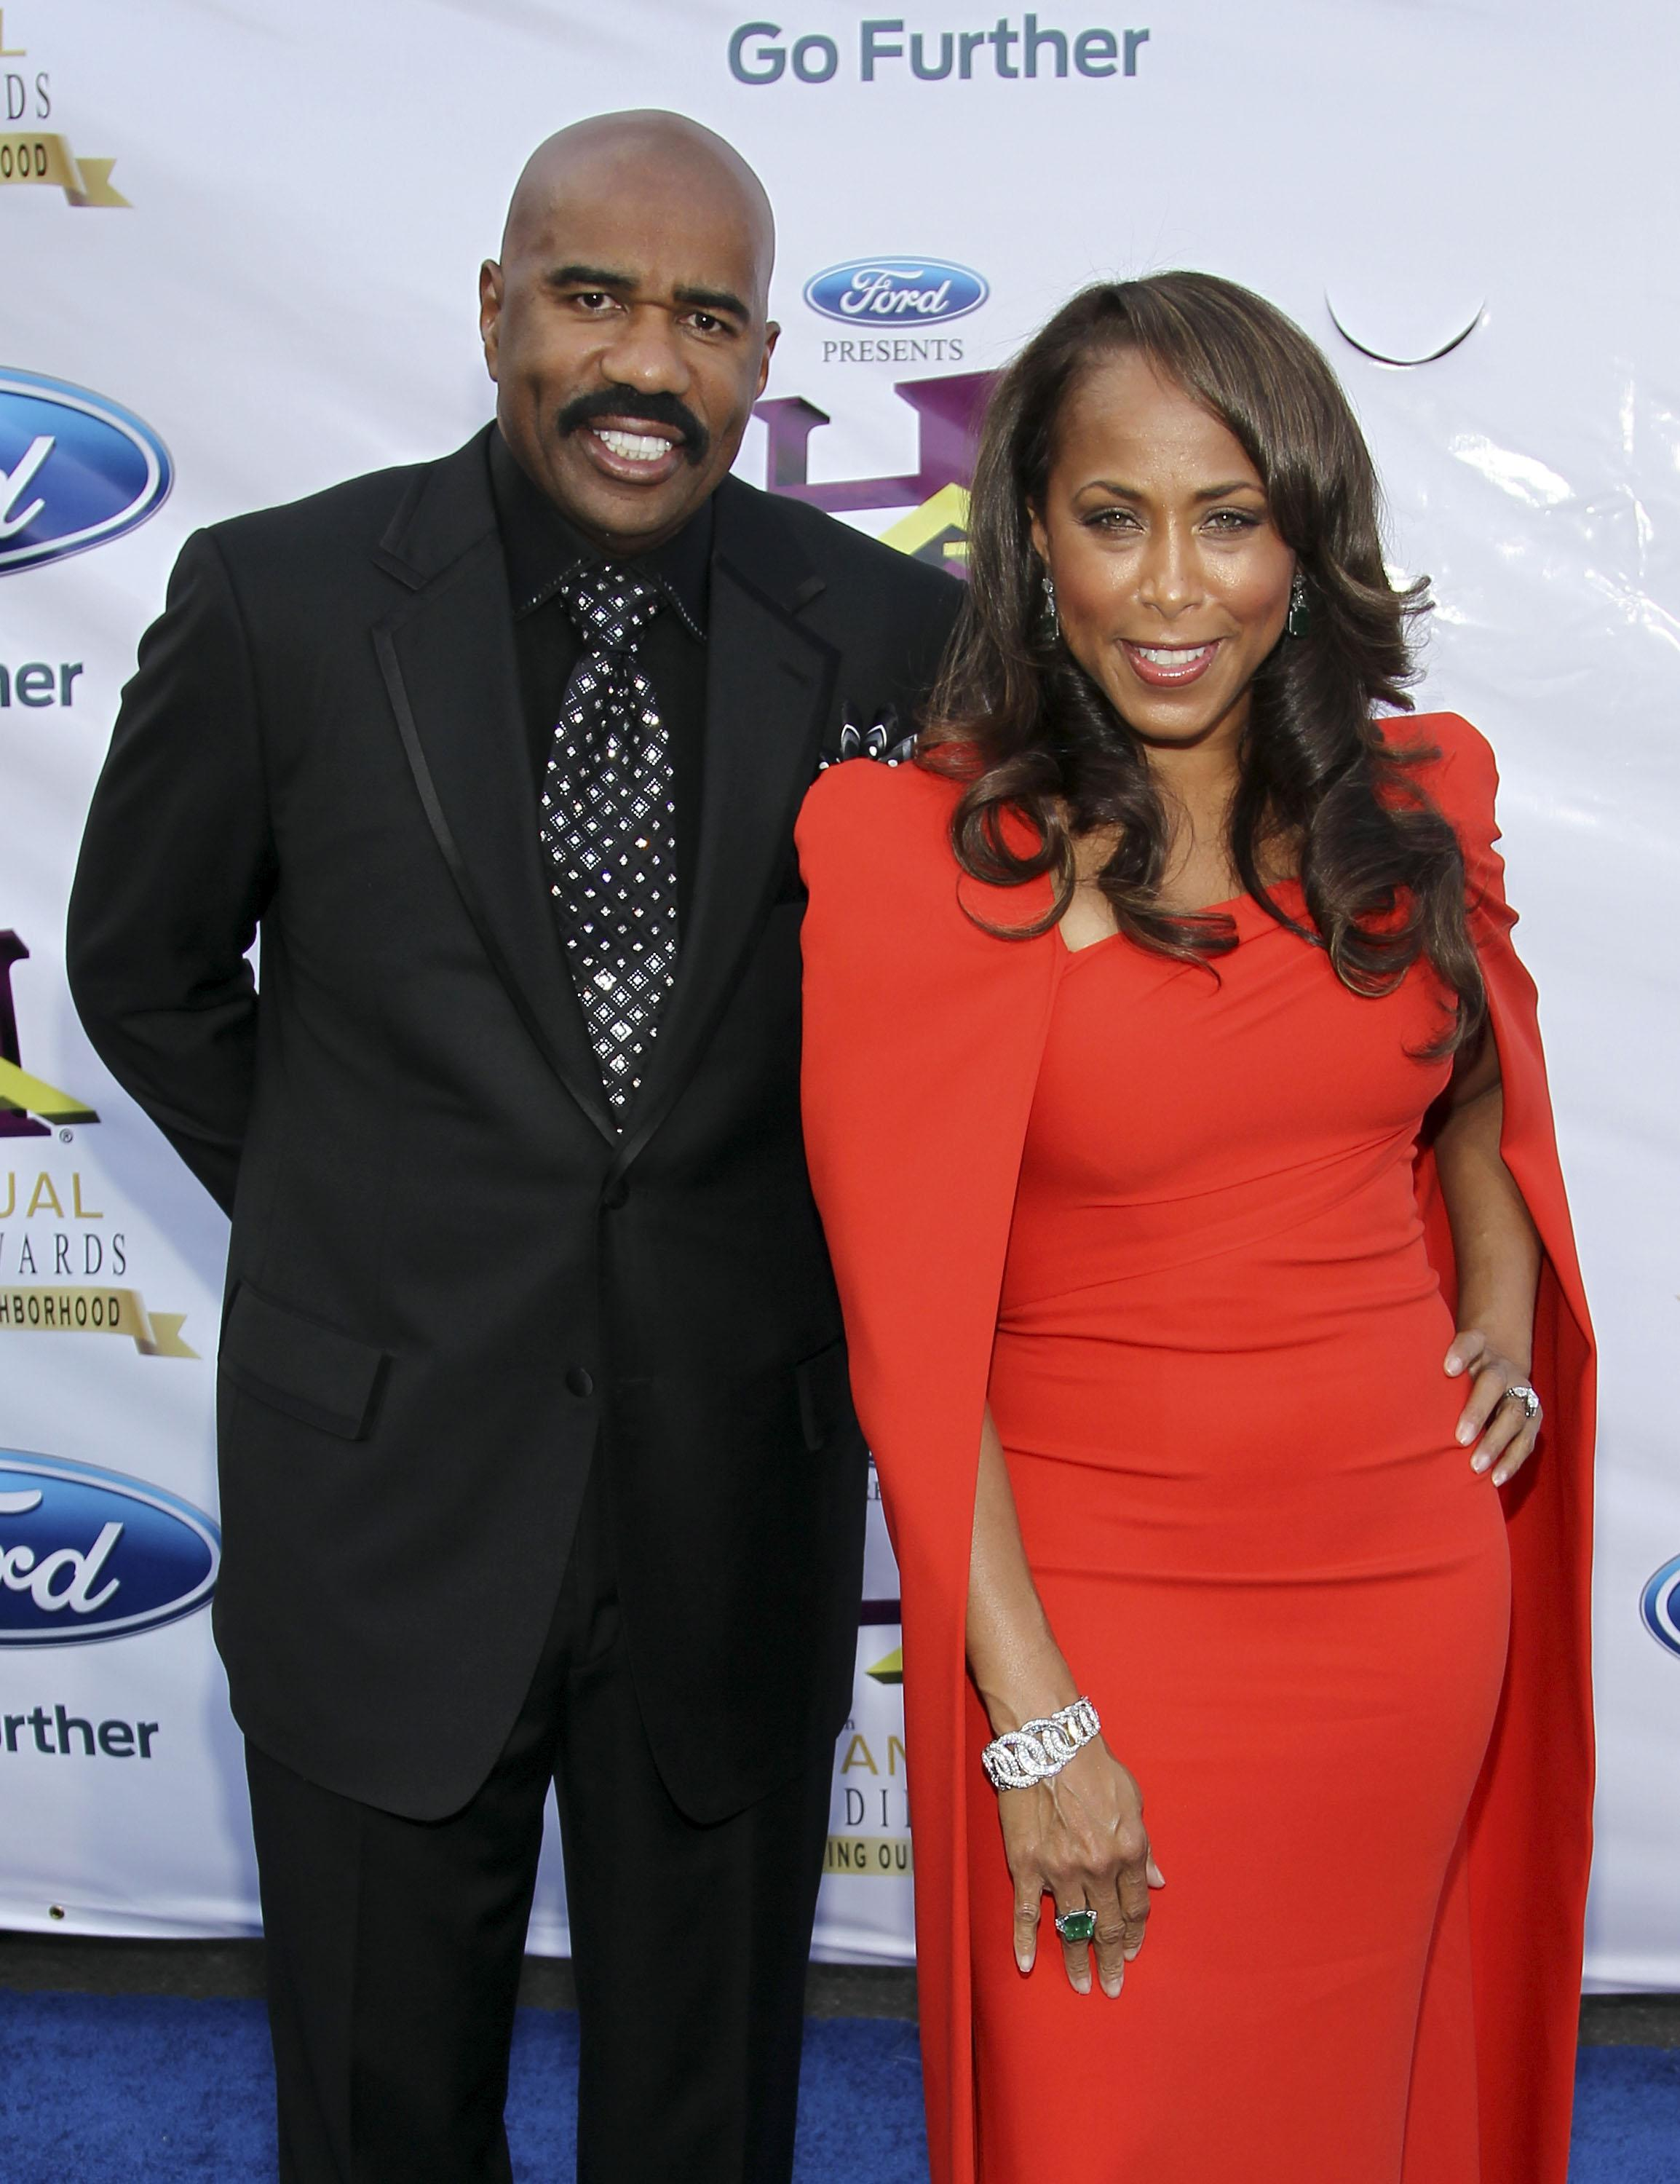 The 10th Annual Ford Hoodie Awards Hosted By Steve Harvey - Red Carpet